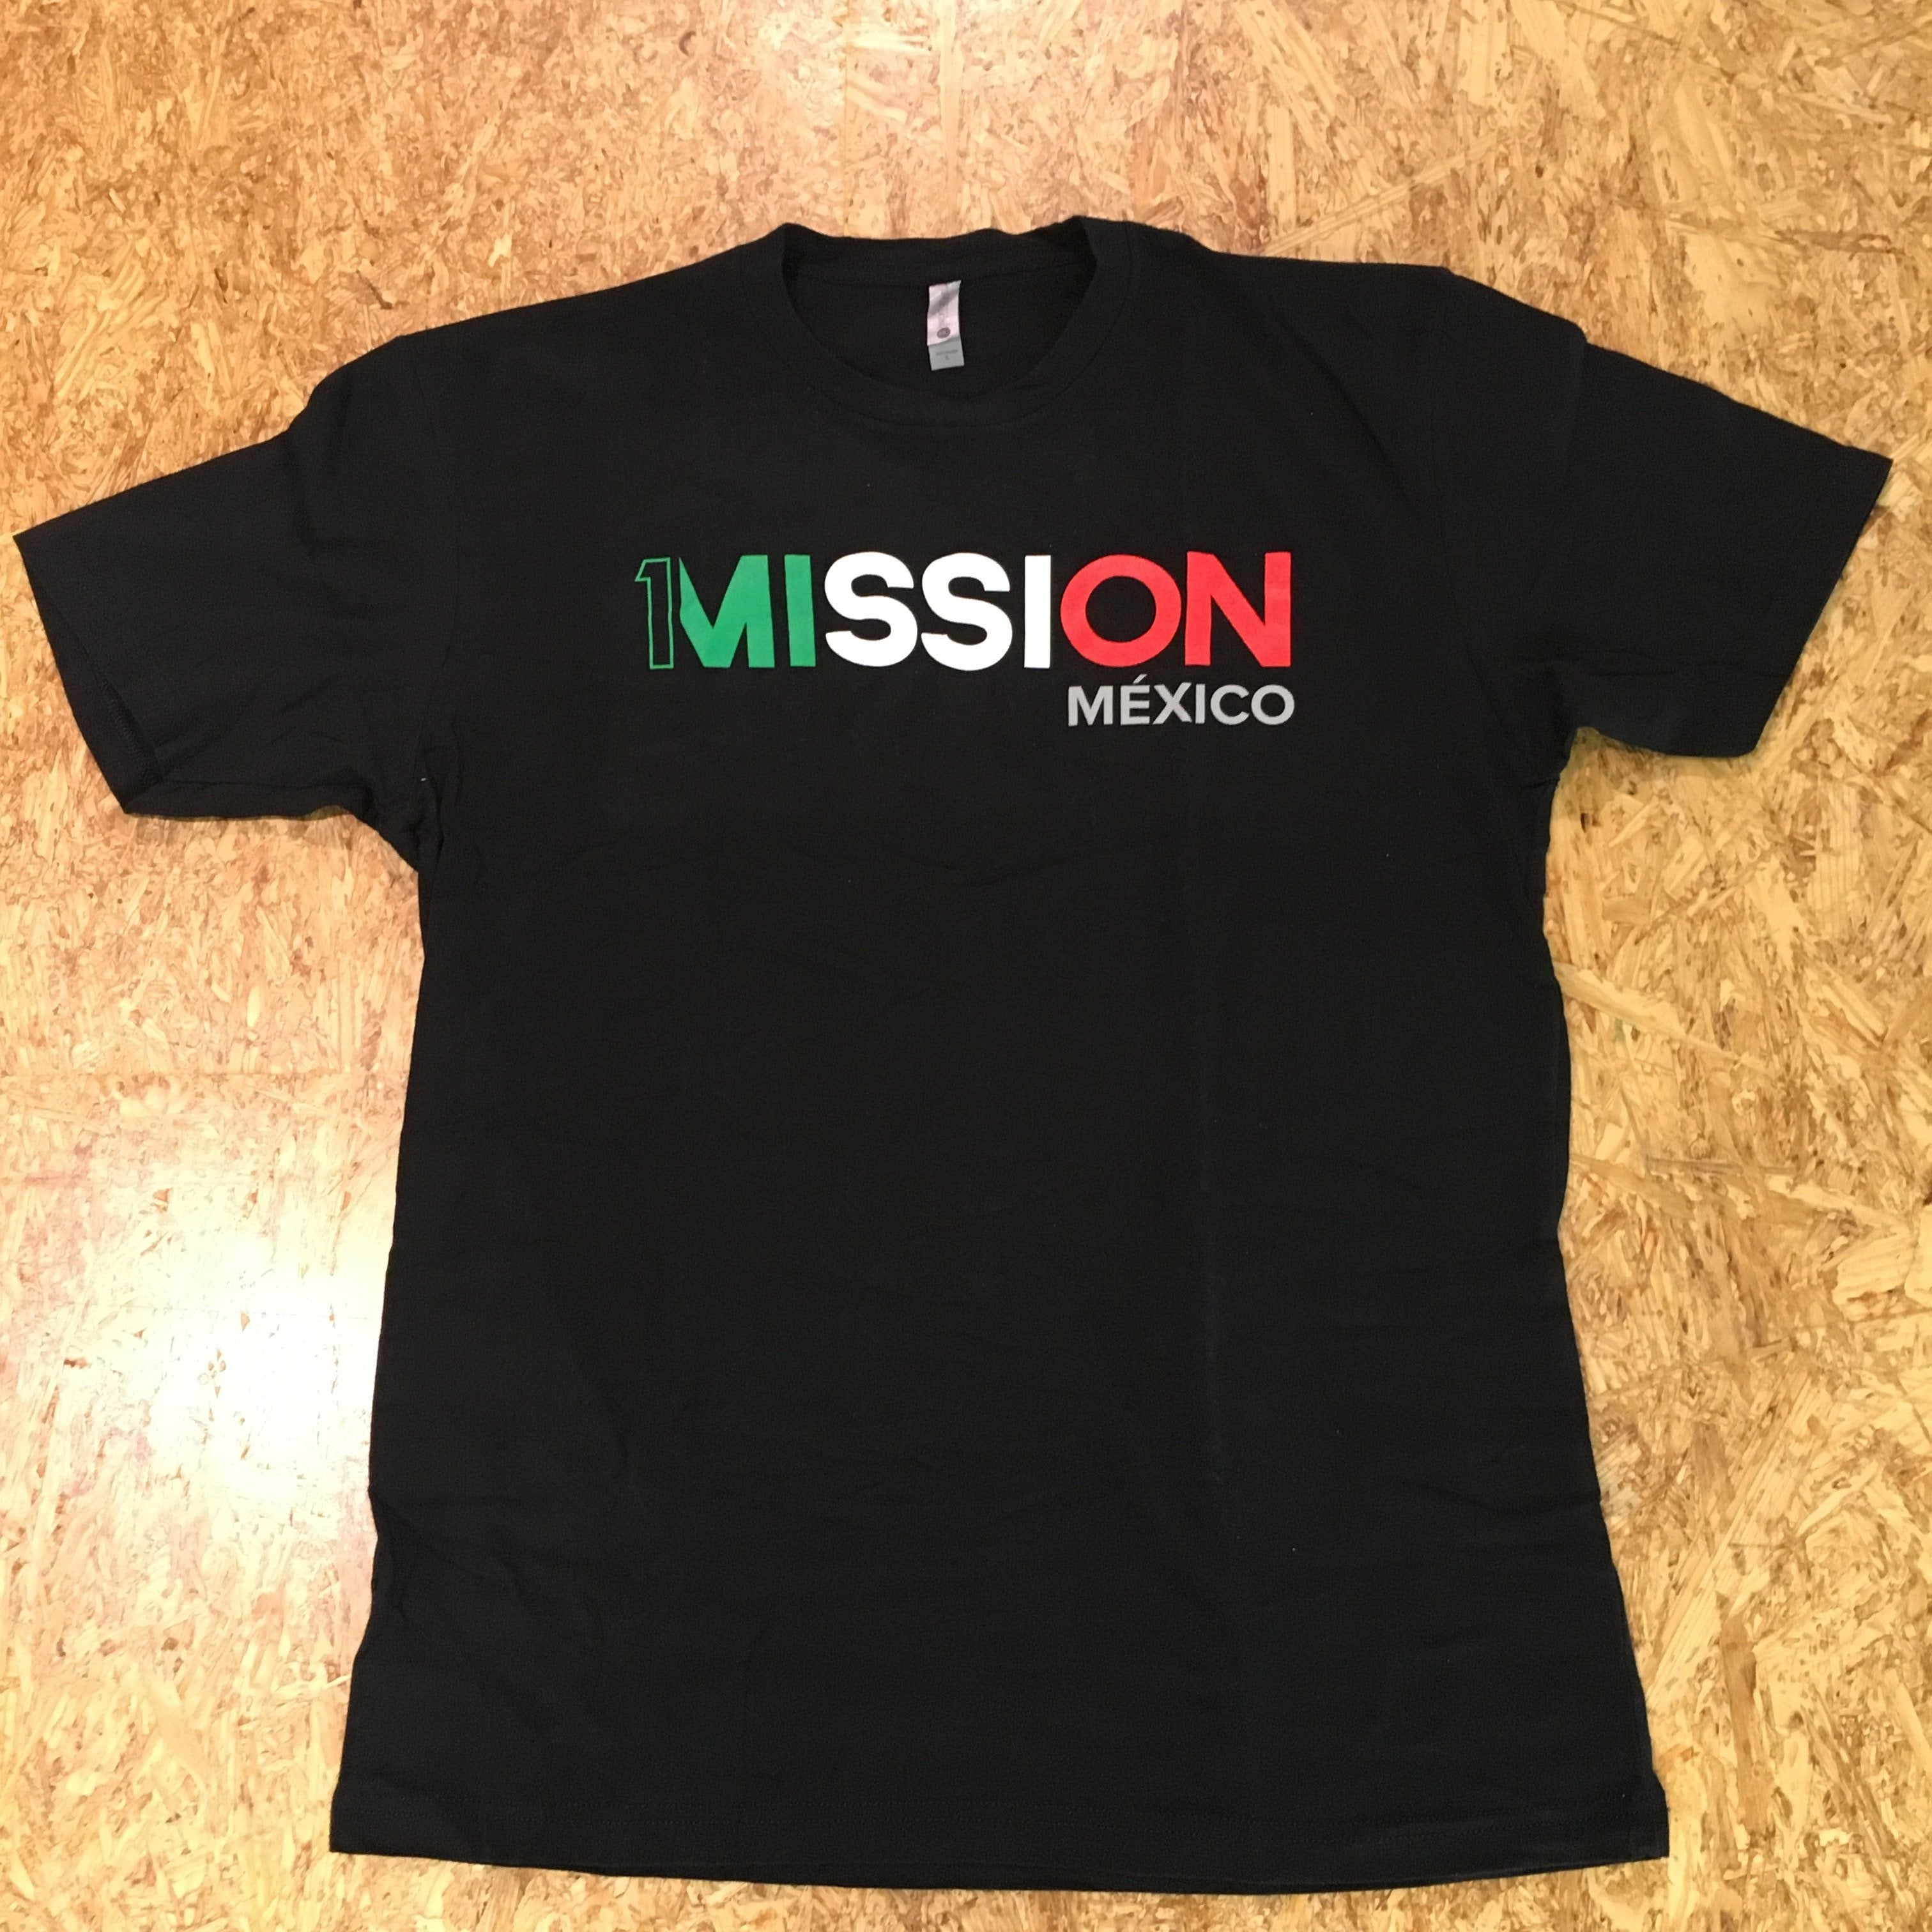 1MISSION Mexico Shirt